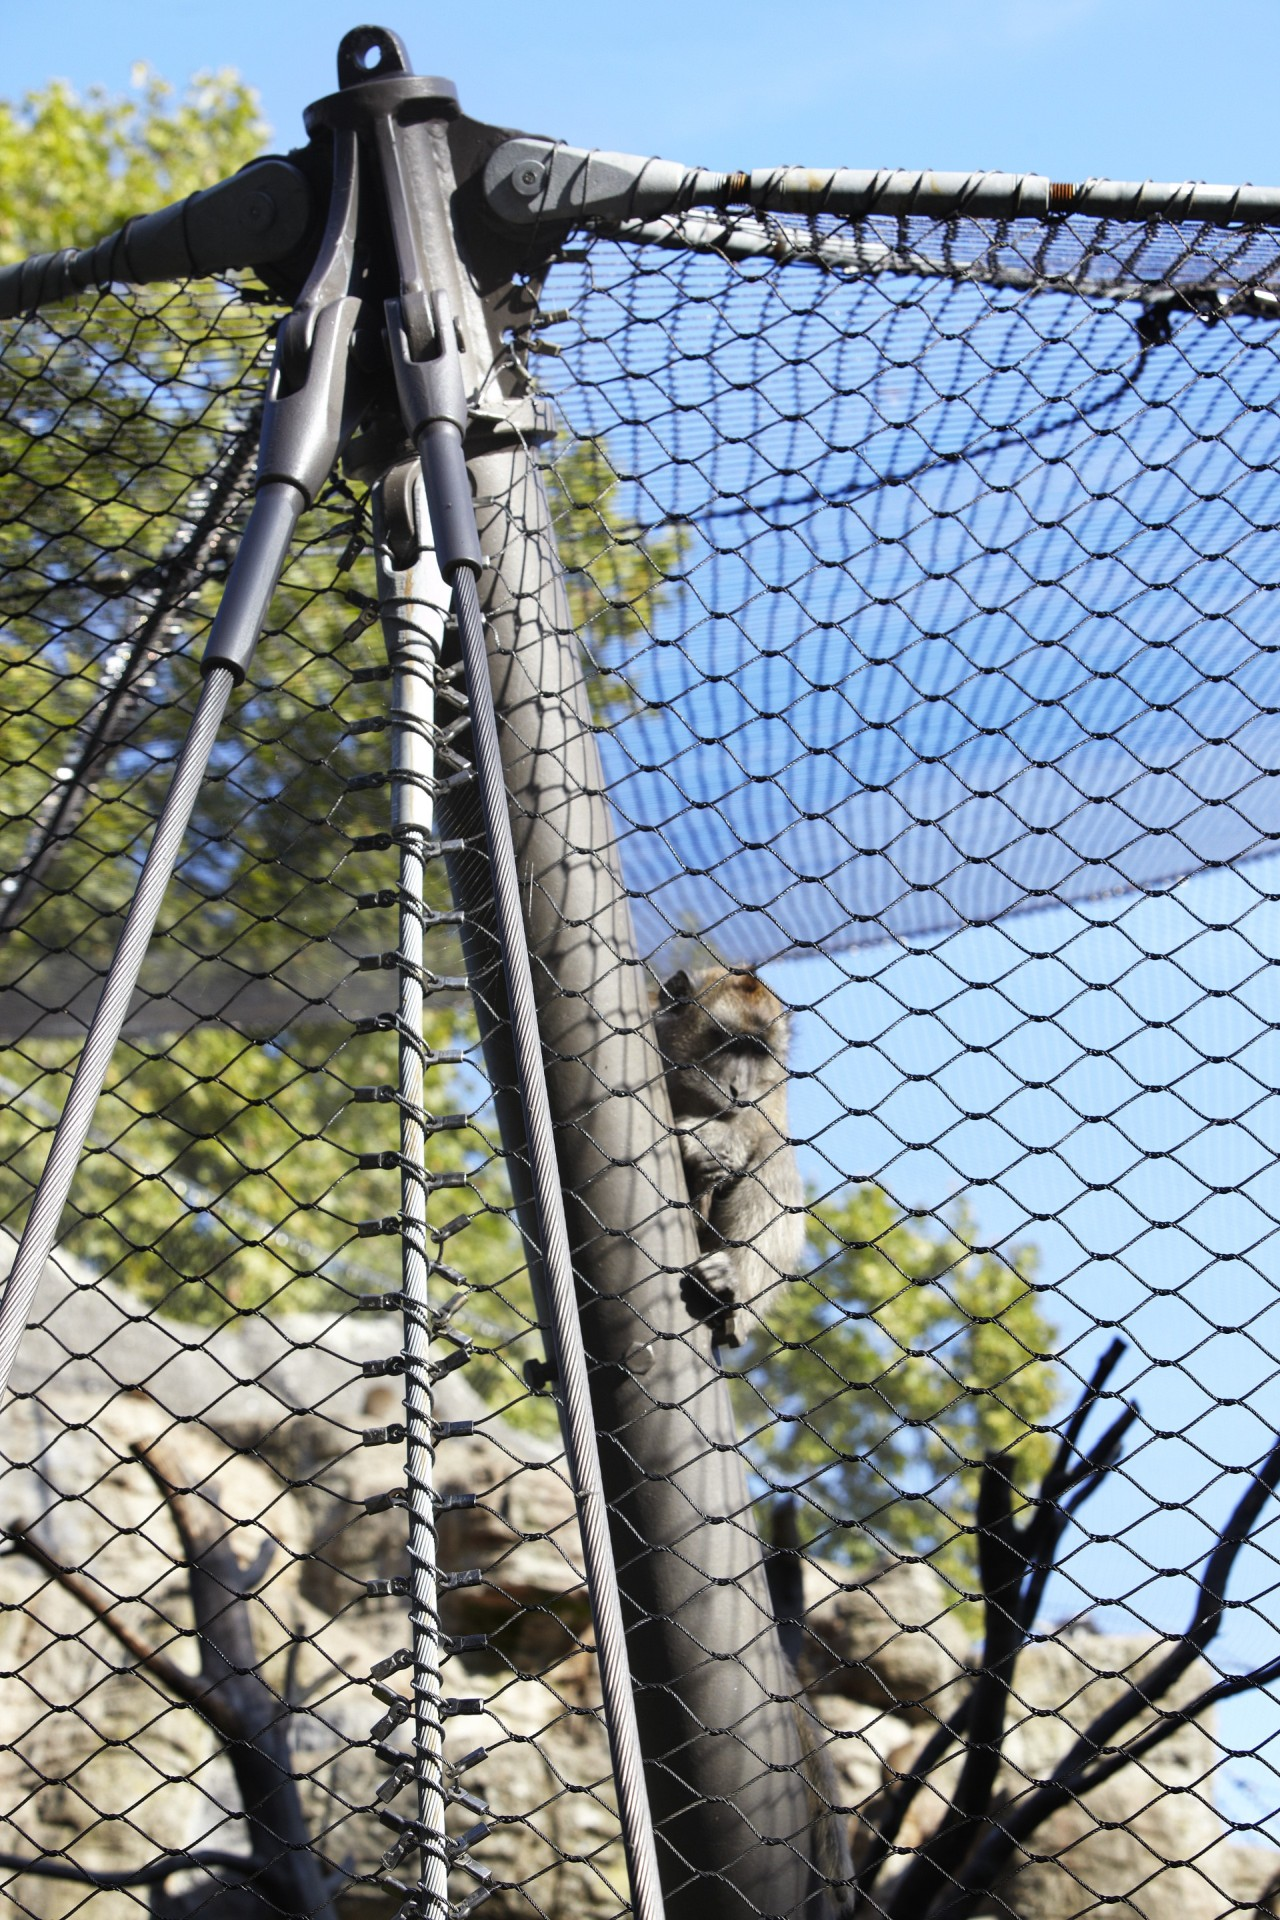 ropes, mesh and poles of an animal enclosure